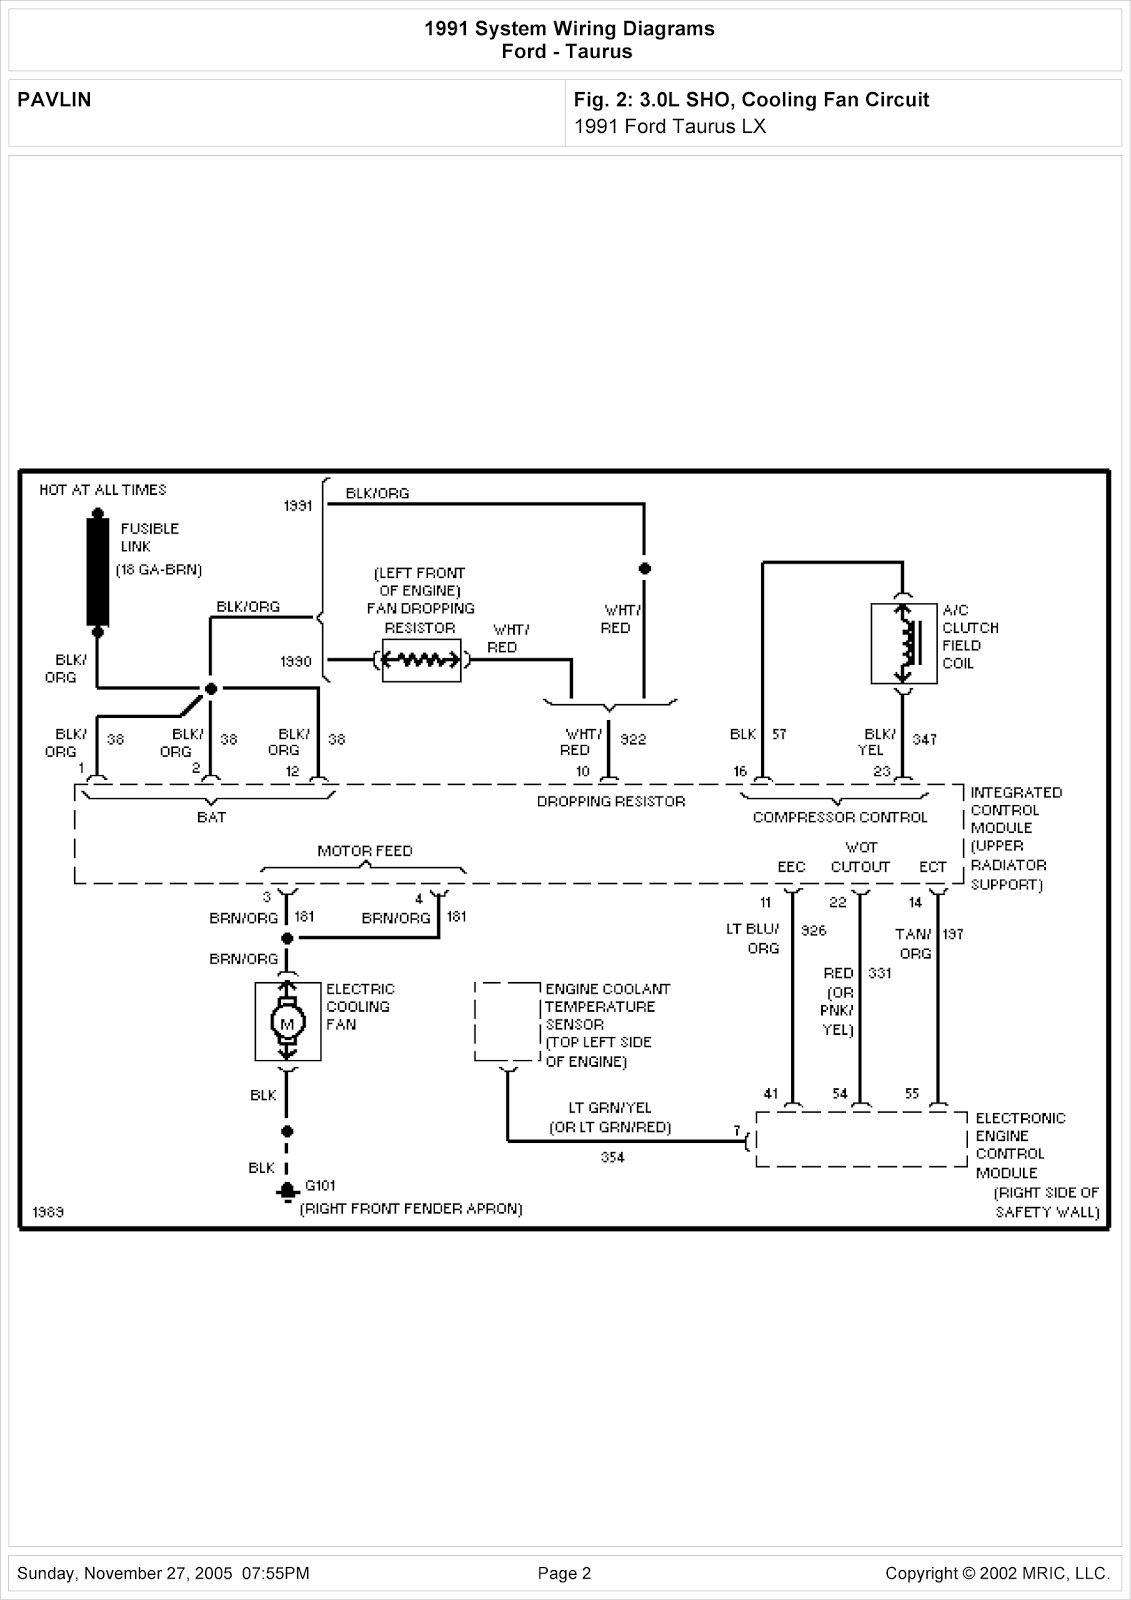 wiring diagram for 1999 ford taurus fuse box diagram for 1999 ford taurus 1999 ford taurus system wiring diagram cooling fan circuit ...